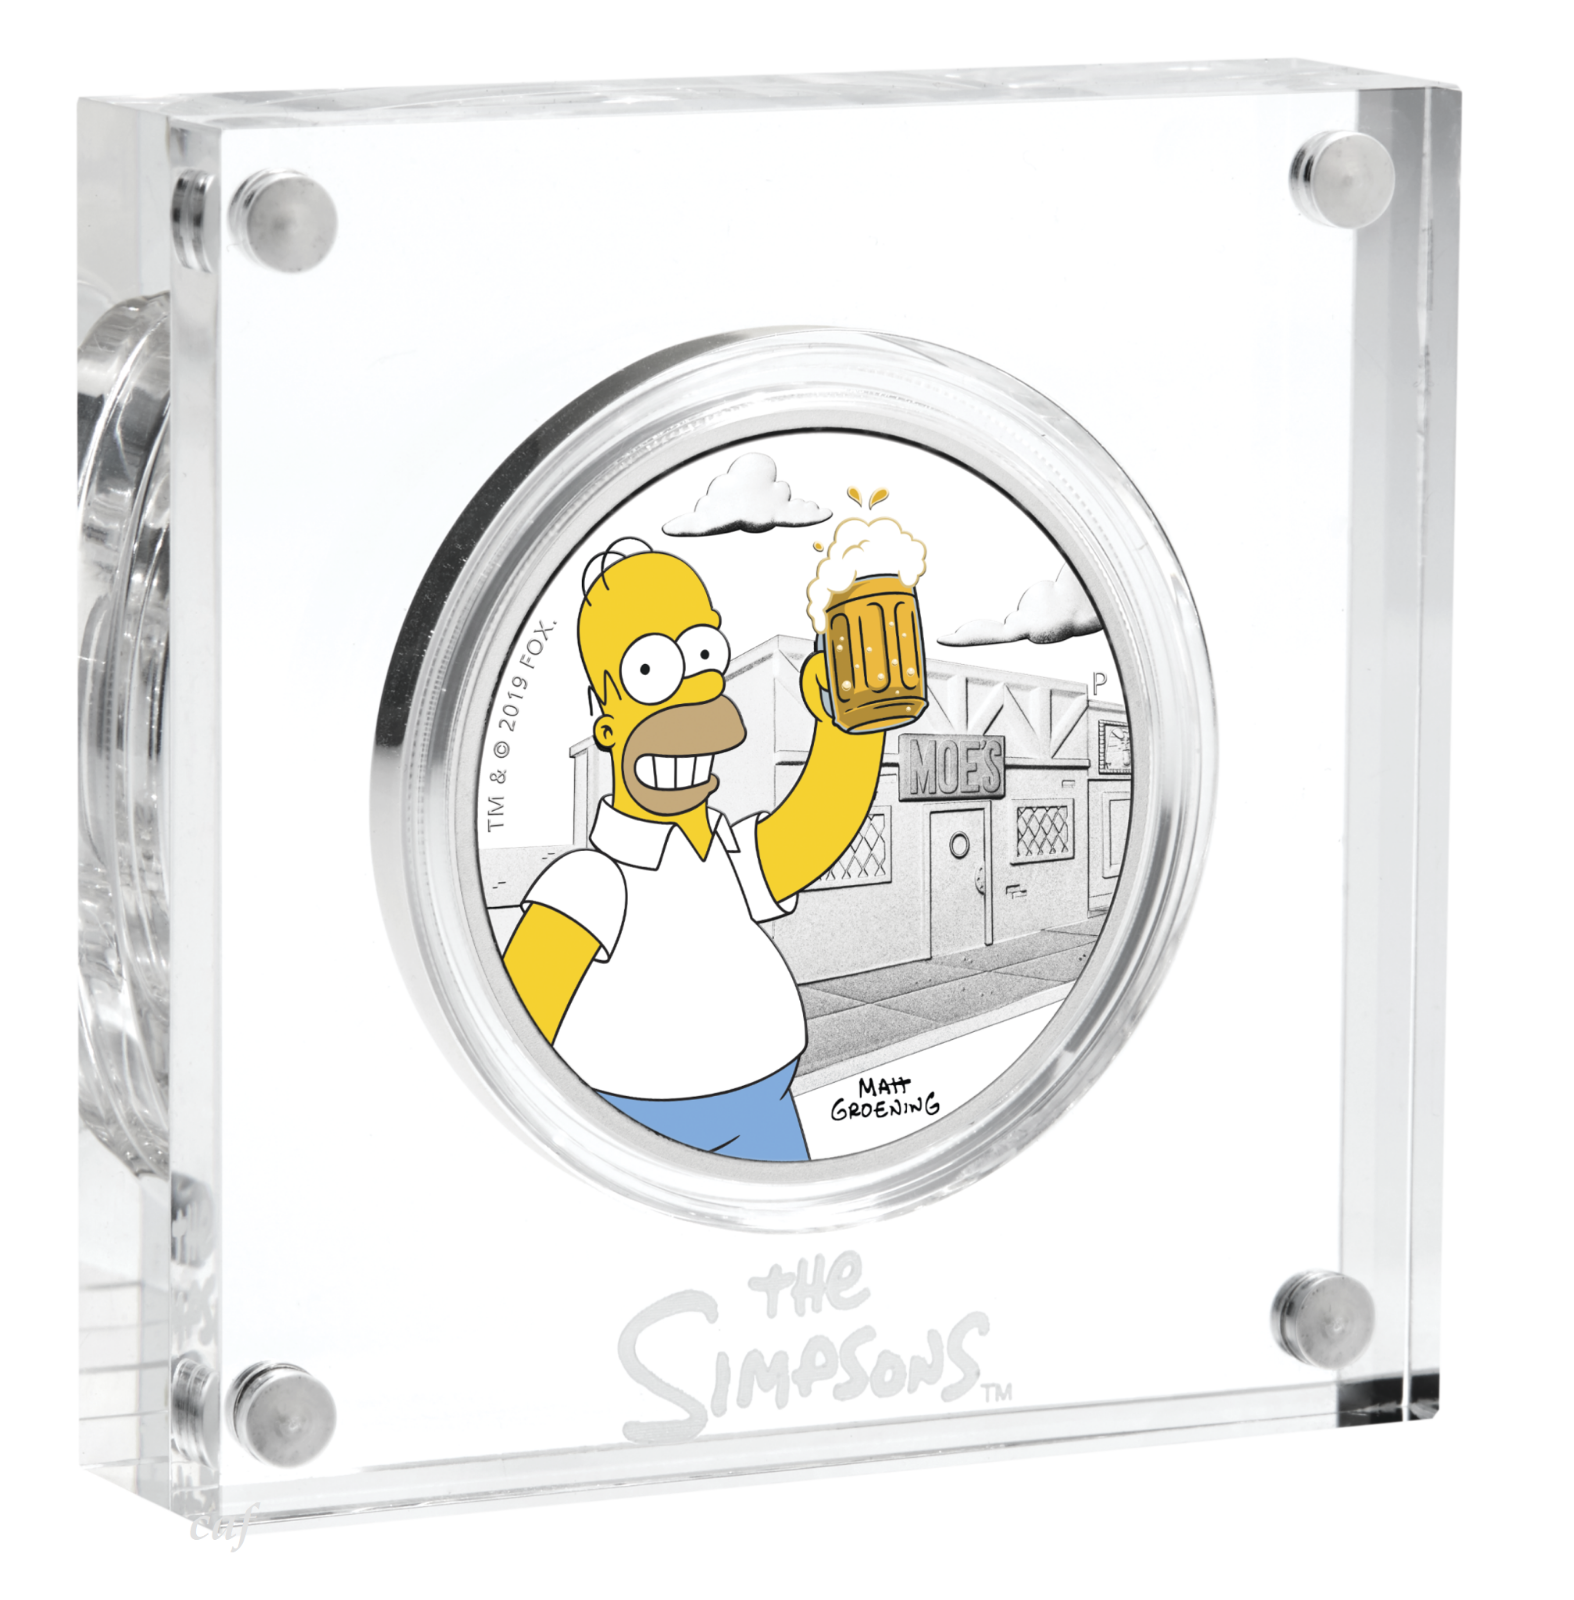 2019 The Simpsons - Homer Simpson 1oz $1 Silver 99.99% Dollar Proof Coin 4